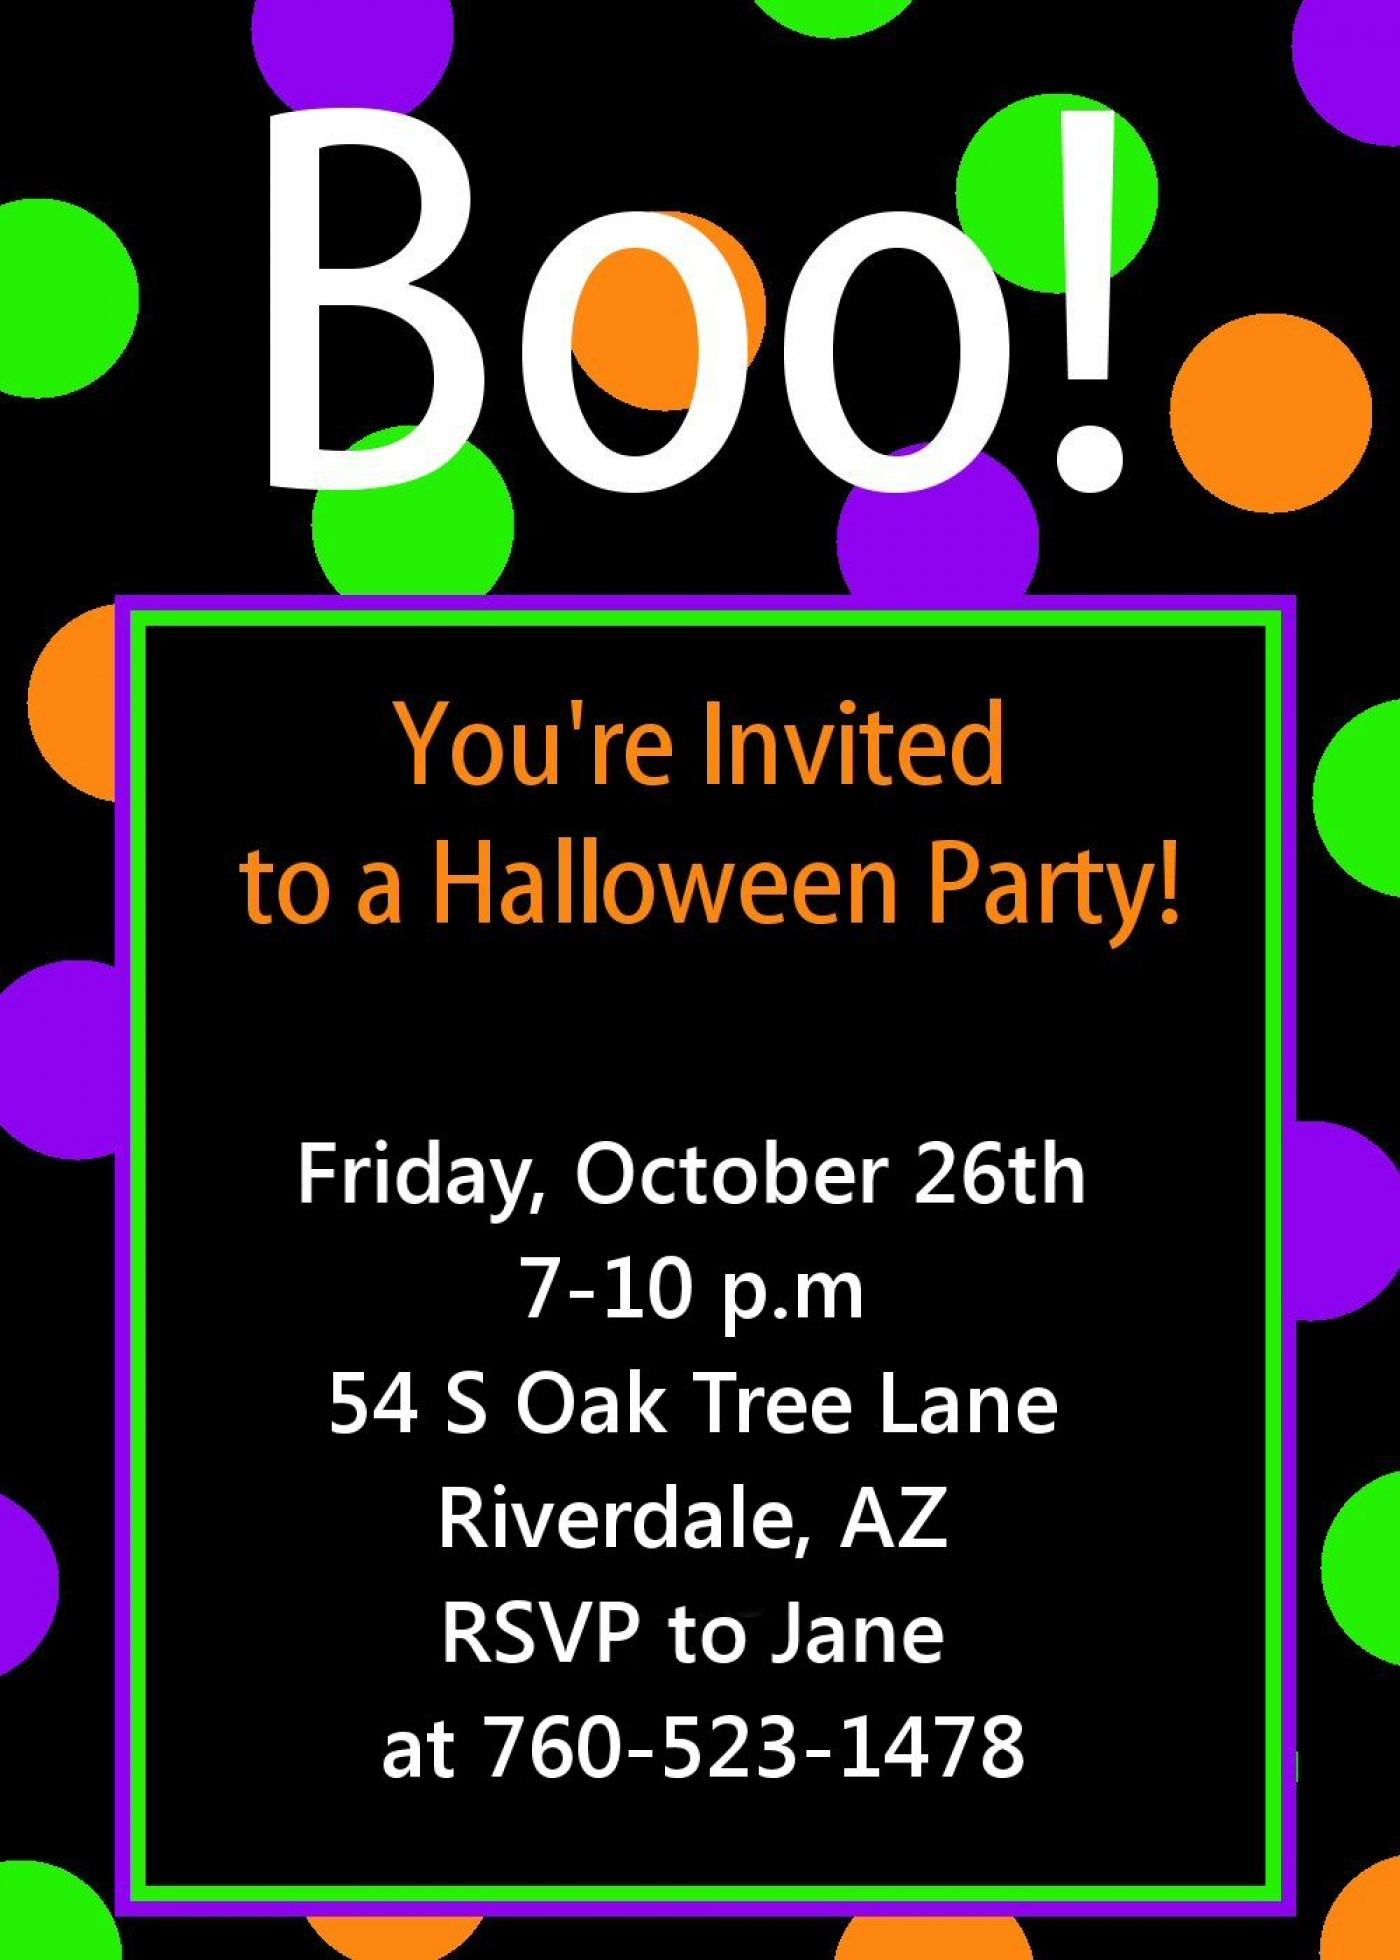 009 Awful Free Halloween Party Invitation Template Picture  Printable Birthday For Word Download1400